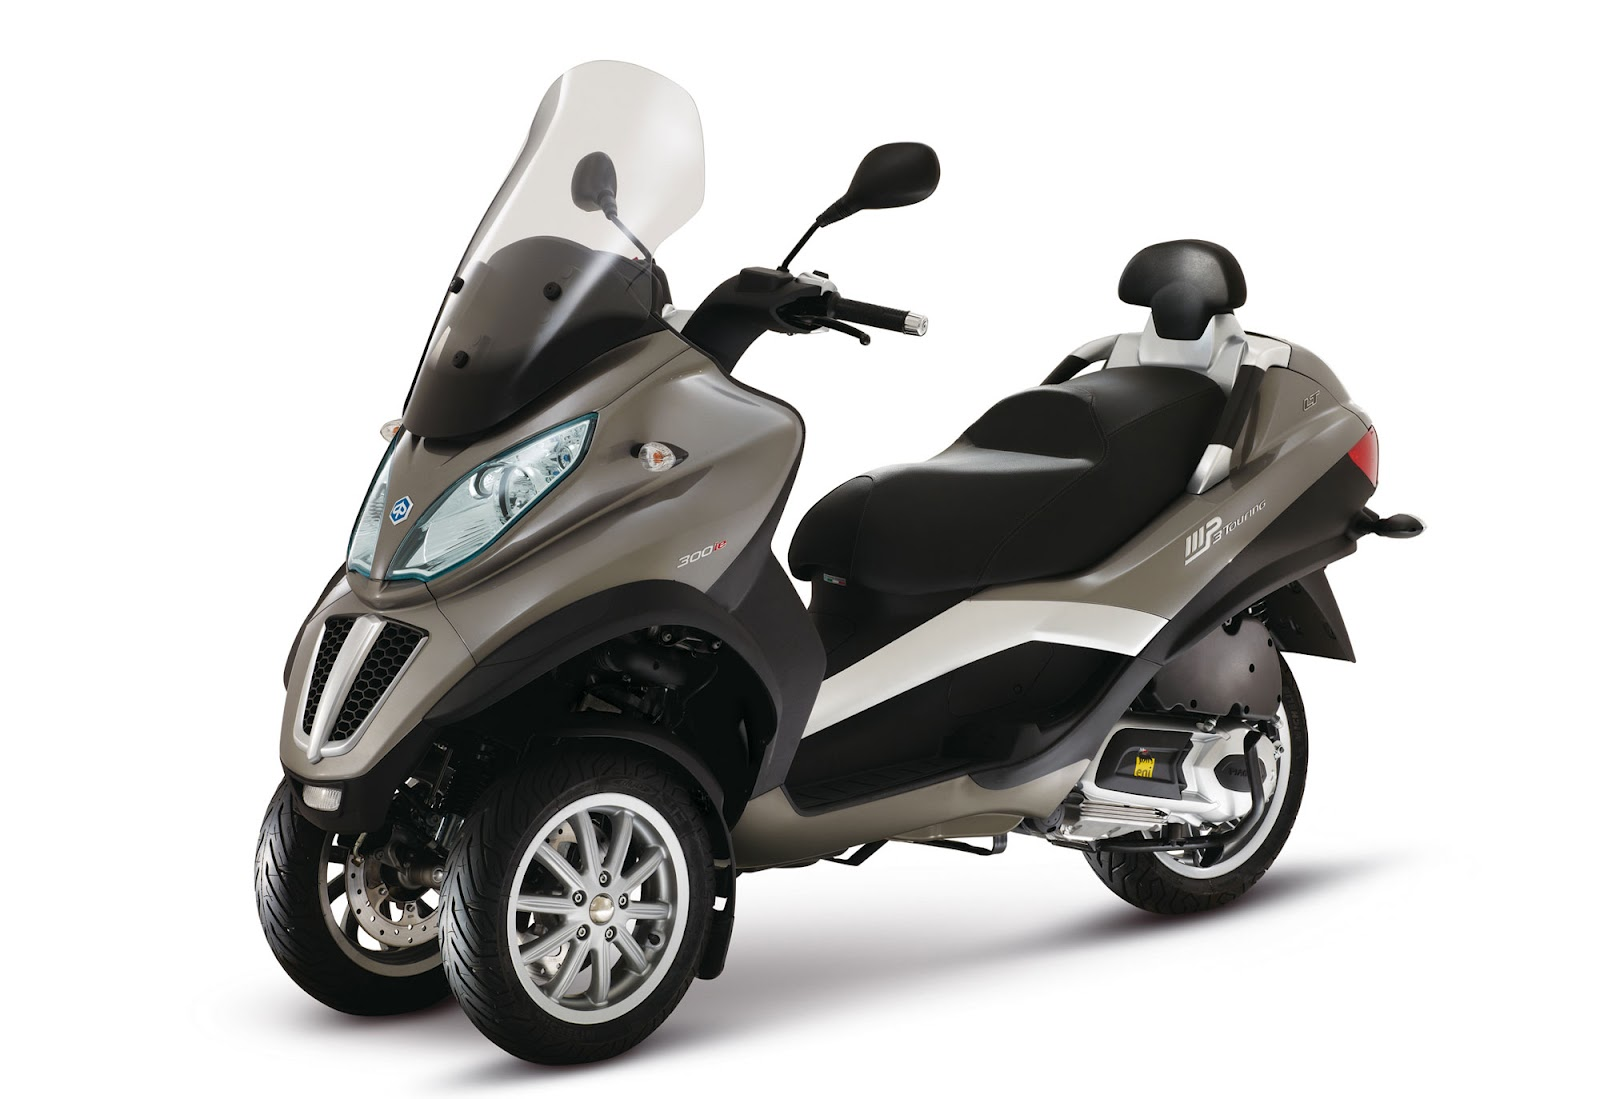 2012 piaggio mp3 touring lt 300 i e review motorcycle news. Black Bedroom Furniture Sets. Home Design Ideas